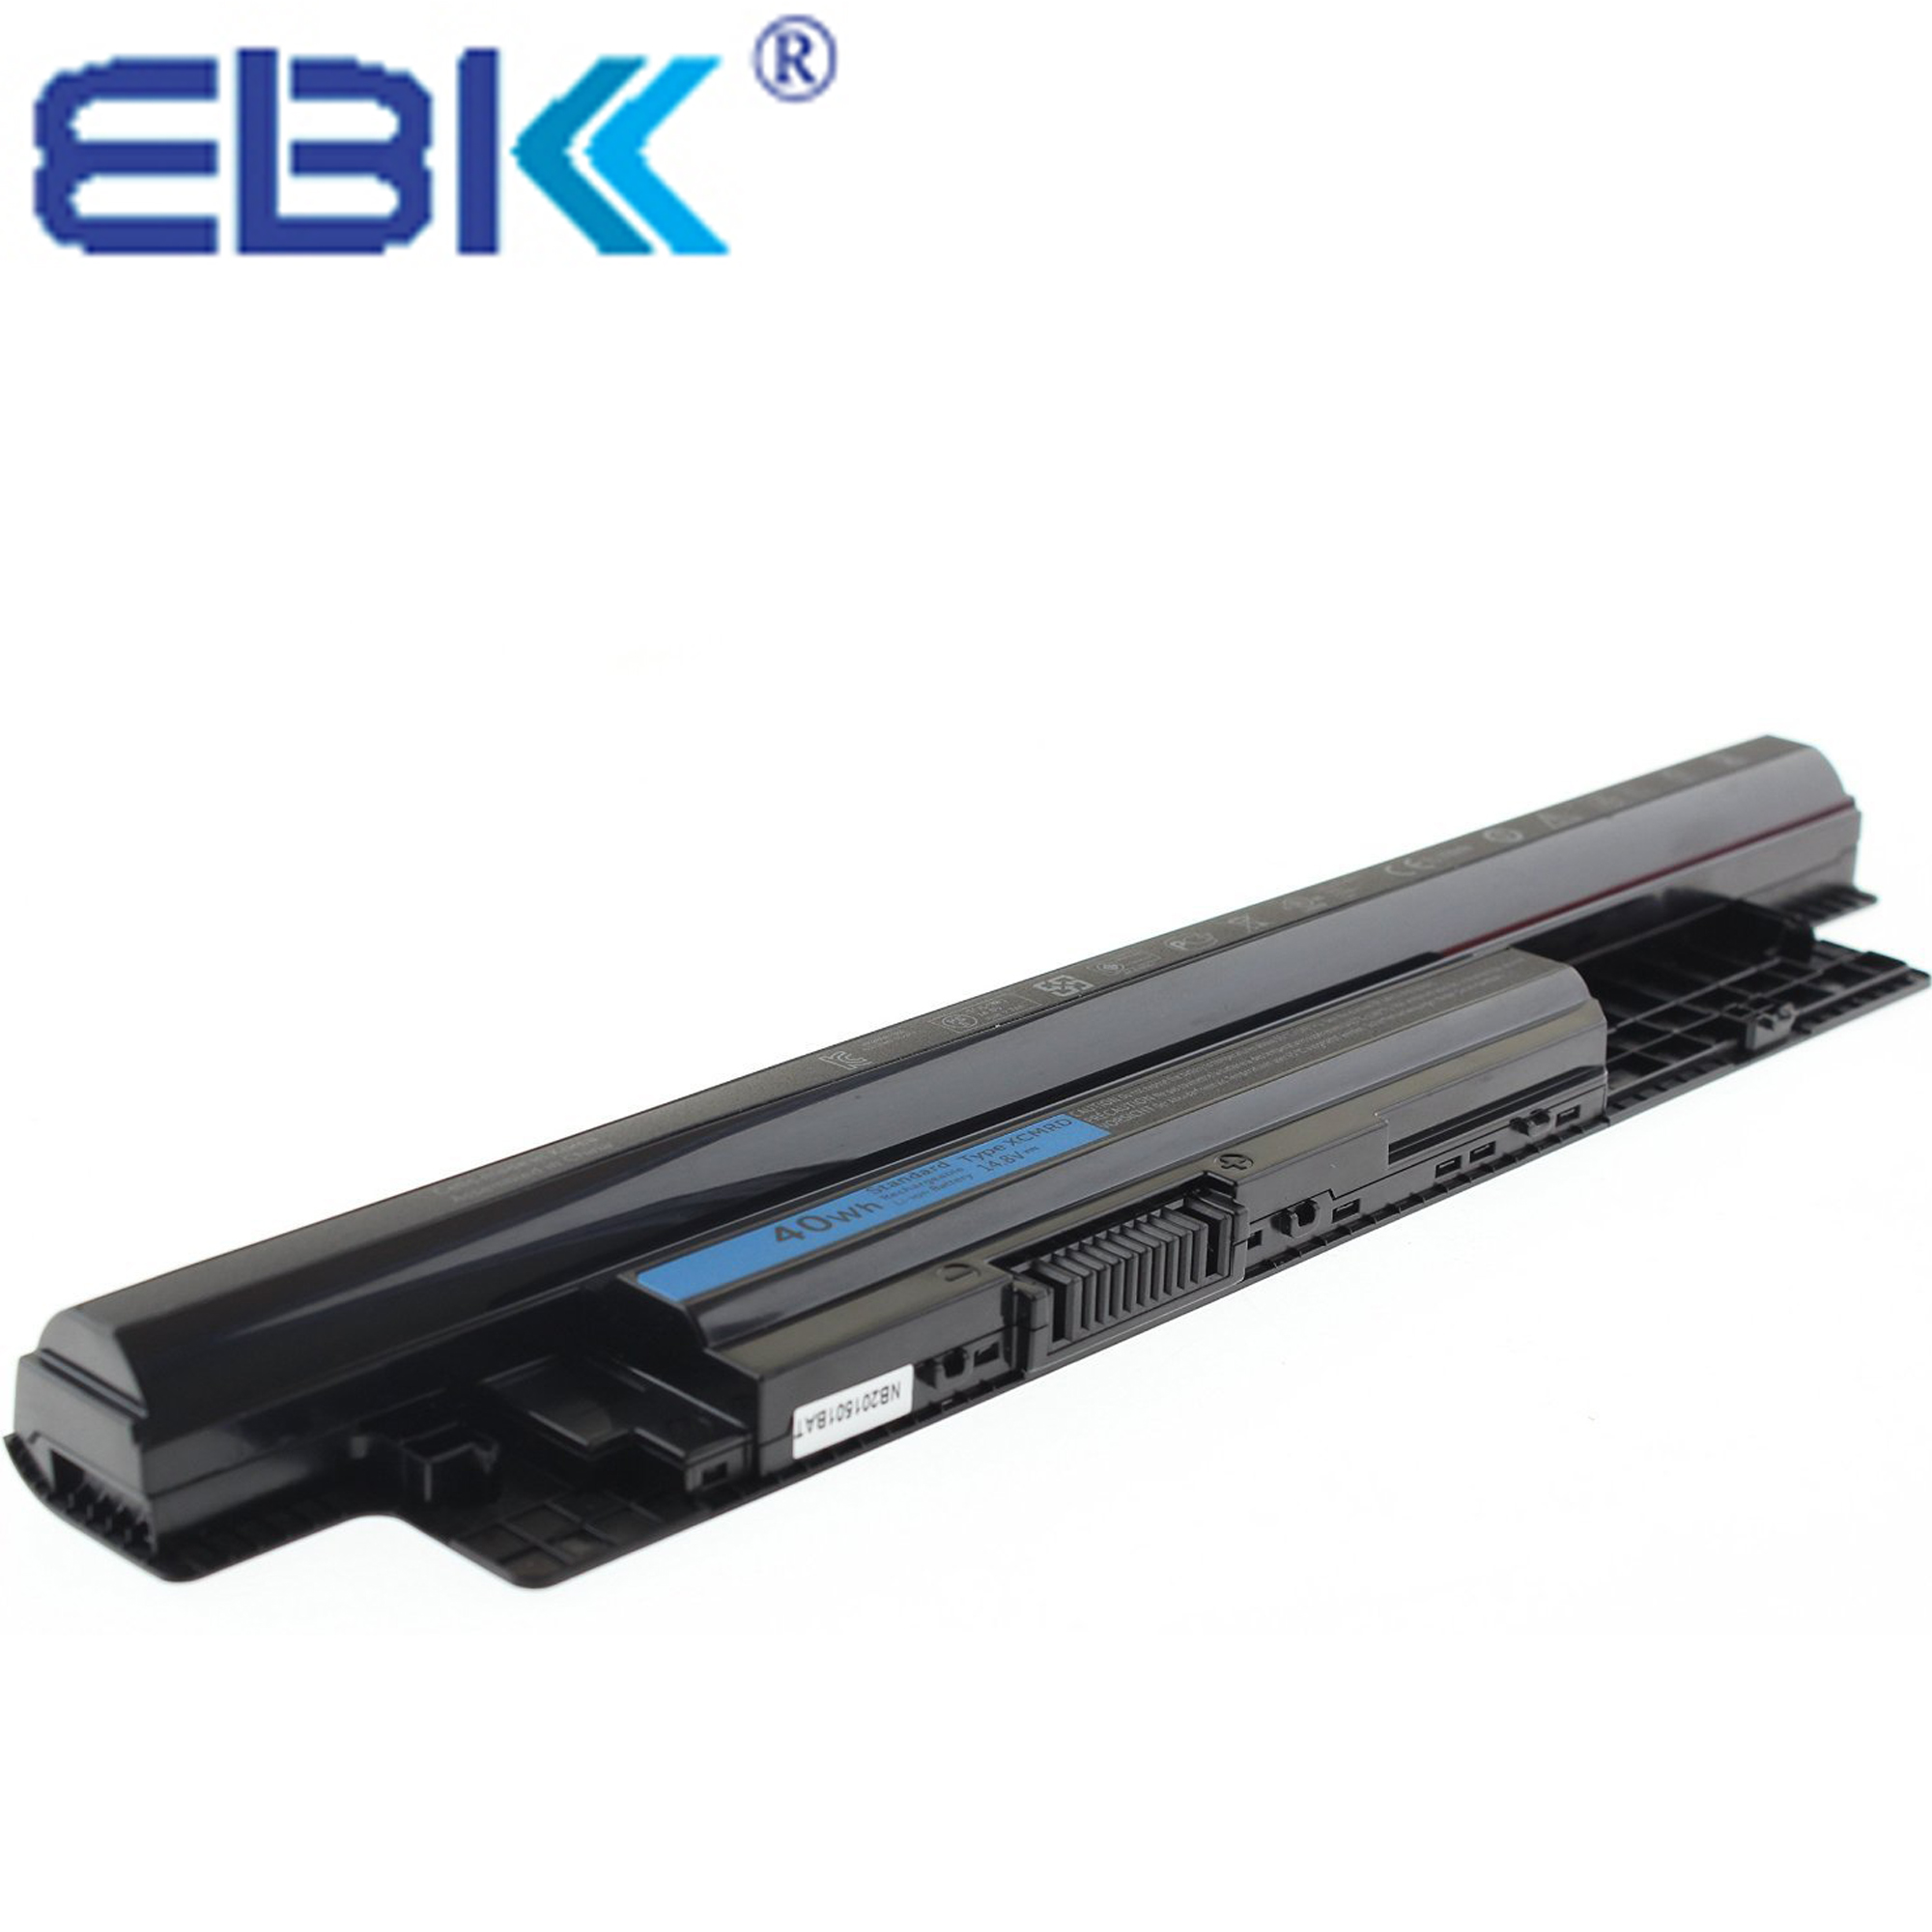 EBK 14.8V 40Wh 4cell Battery XCMRD For Dell Inspiron 14 15 17 3421 5421 3521 5521 3721 5721 MR90Y Laptop Battery